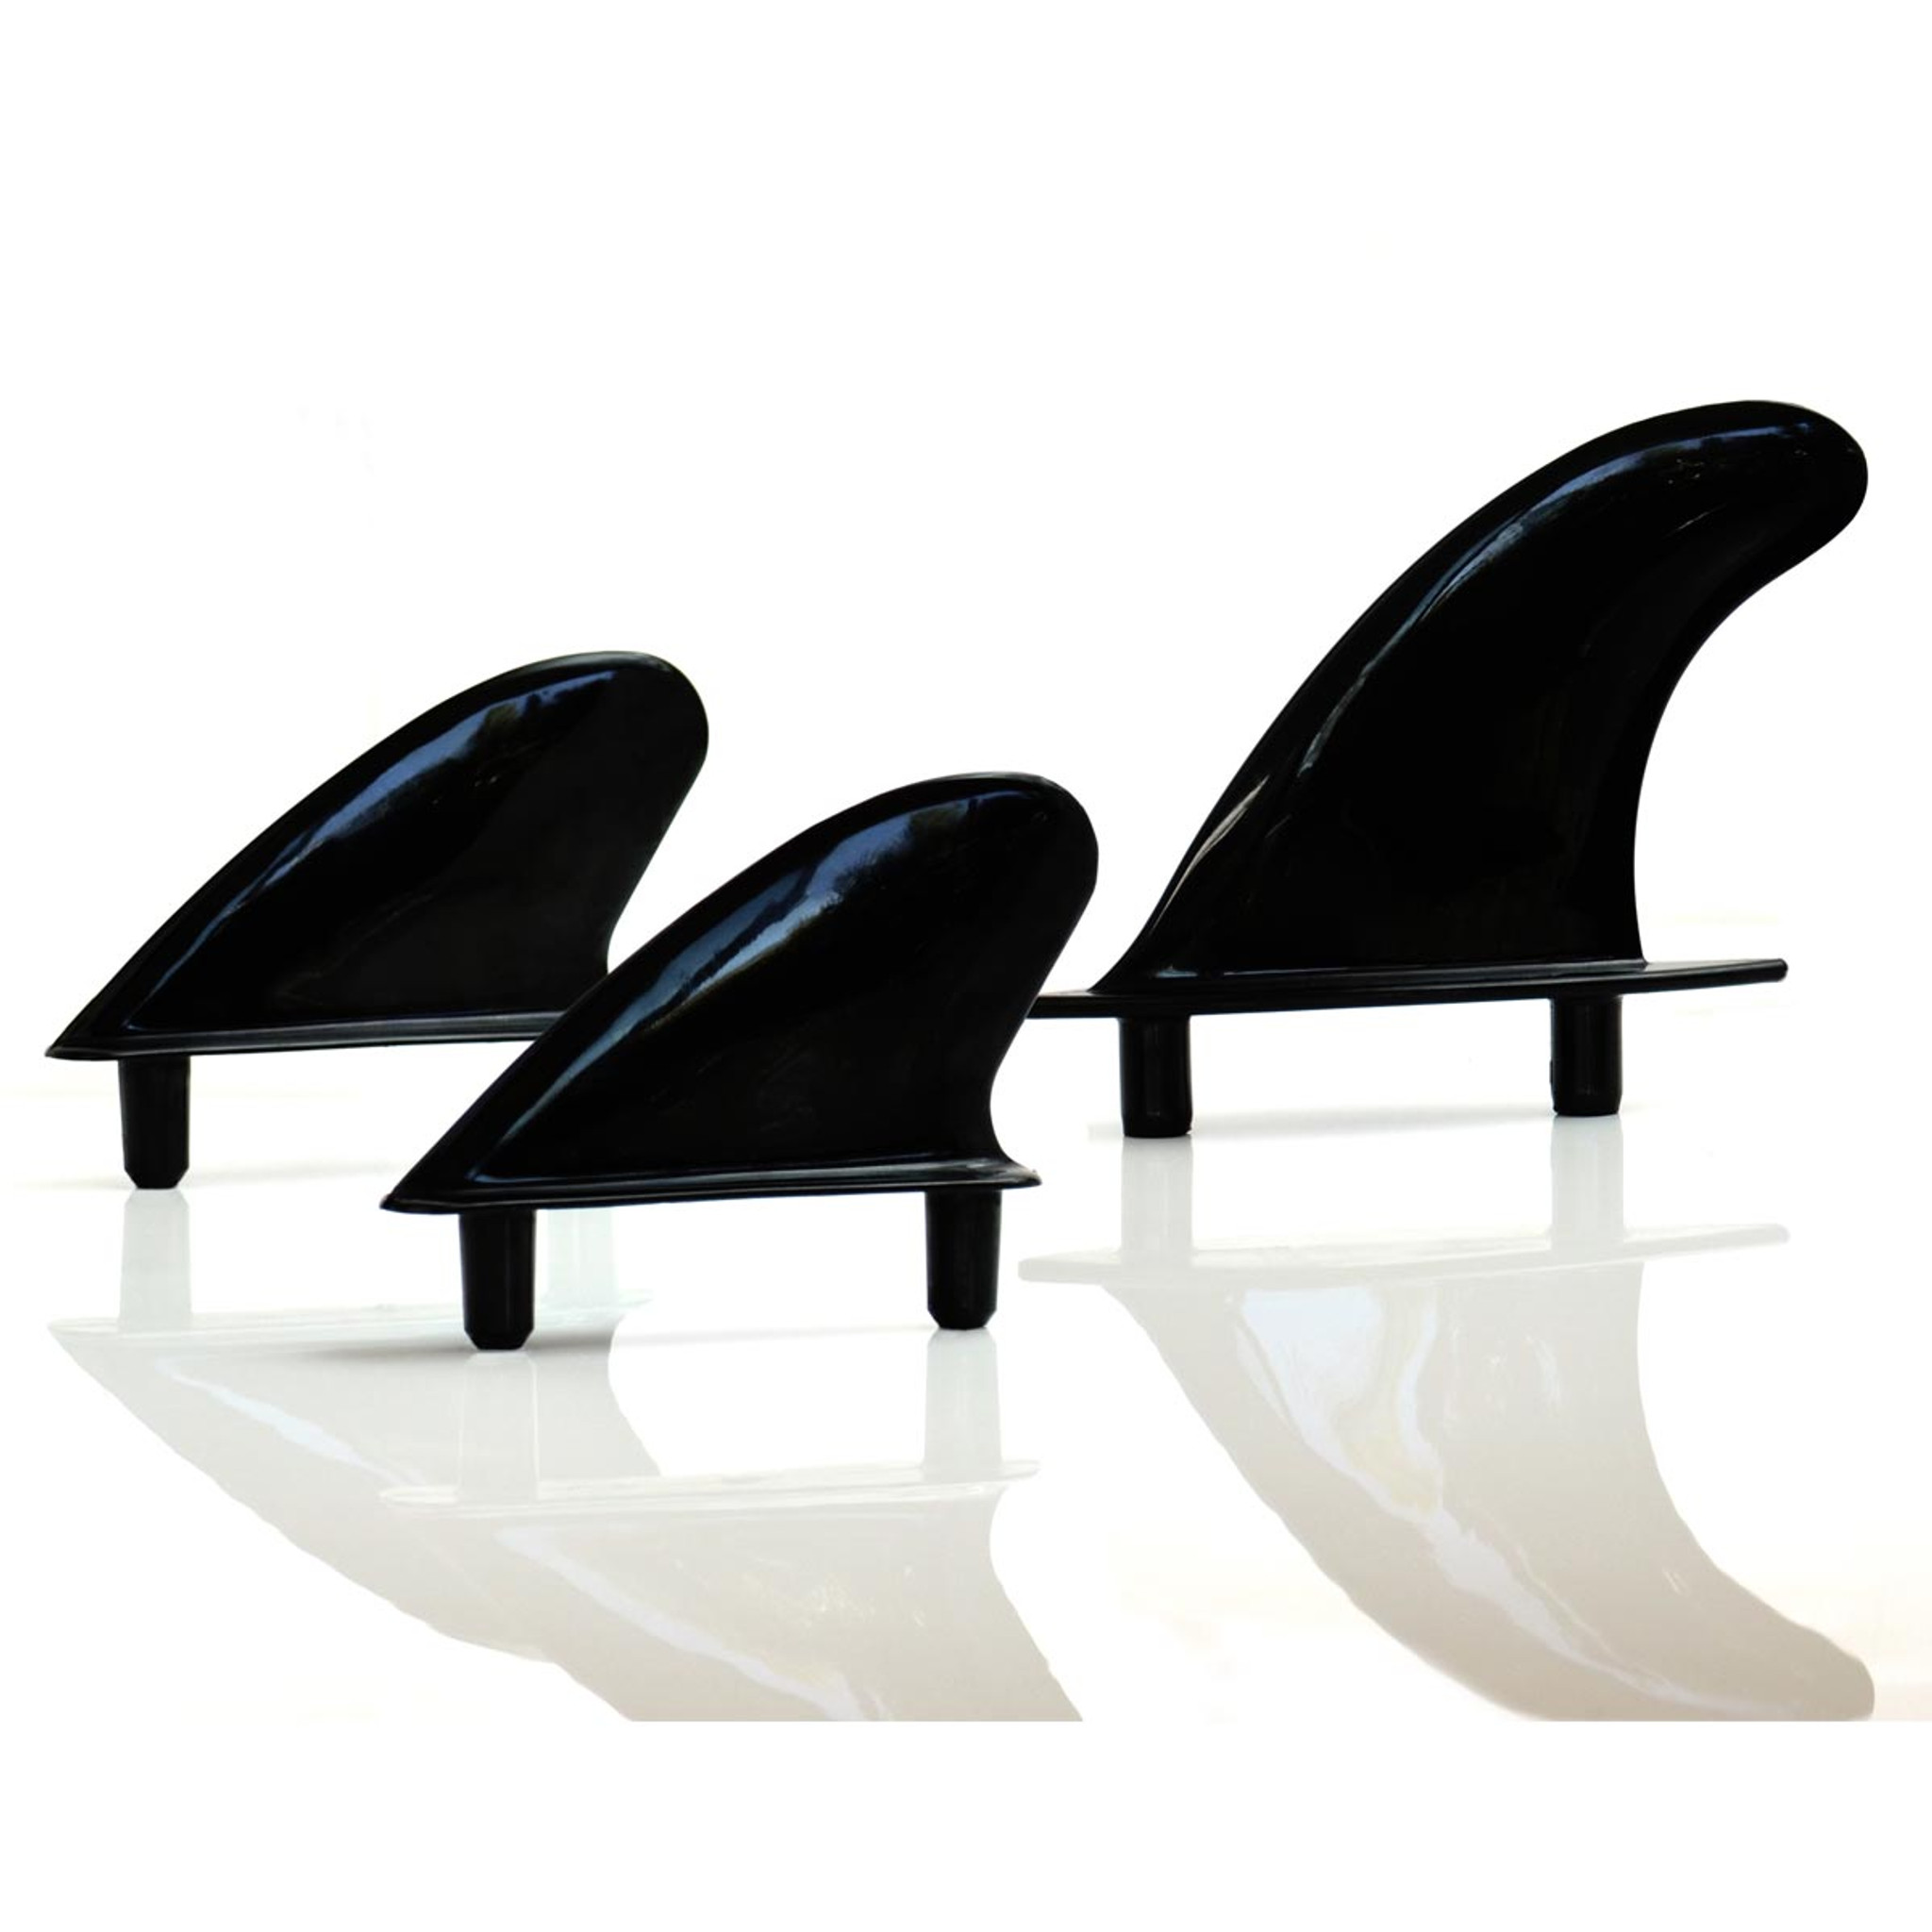 SURFDUST Softboard Fins SD2 and SD4 Comb Set